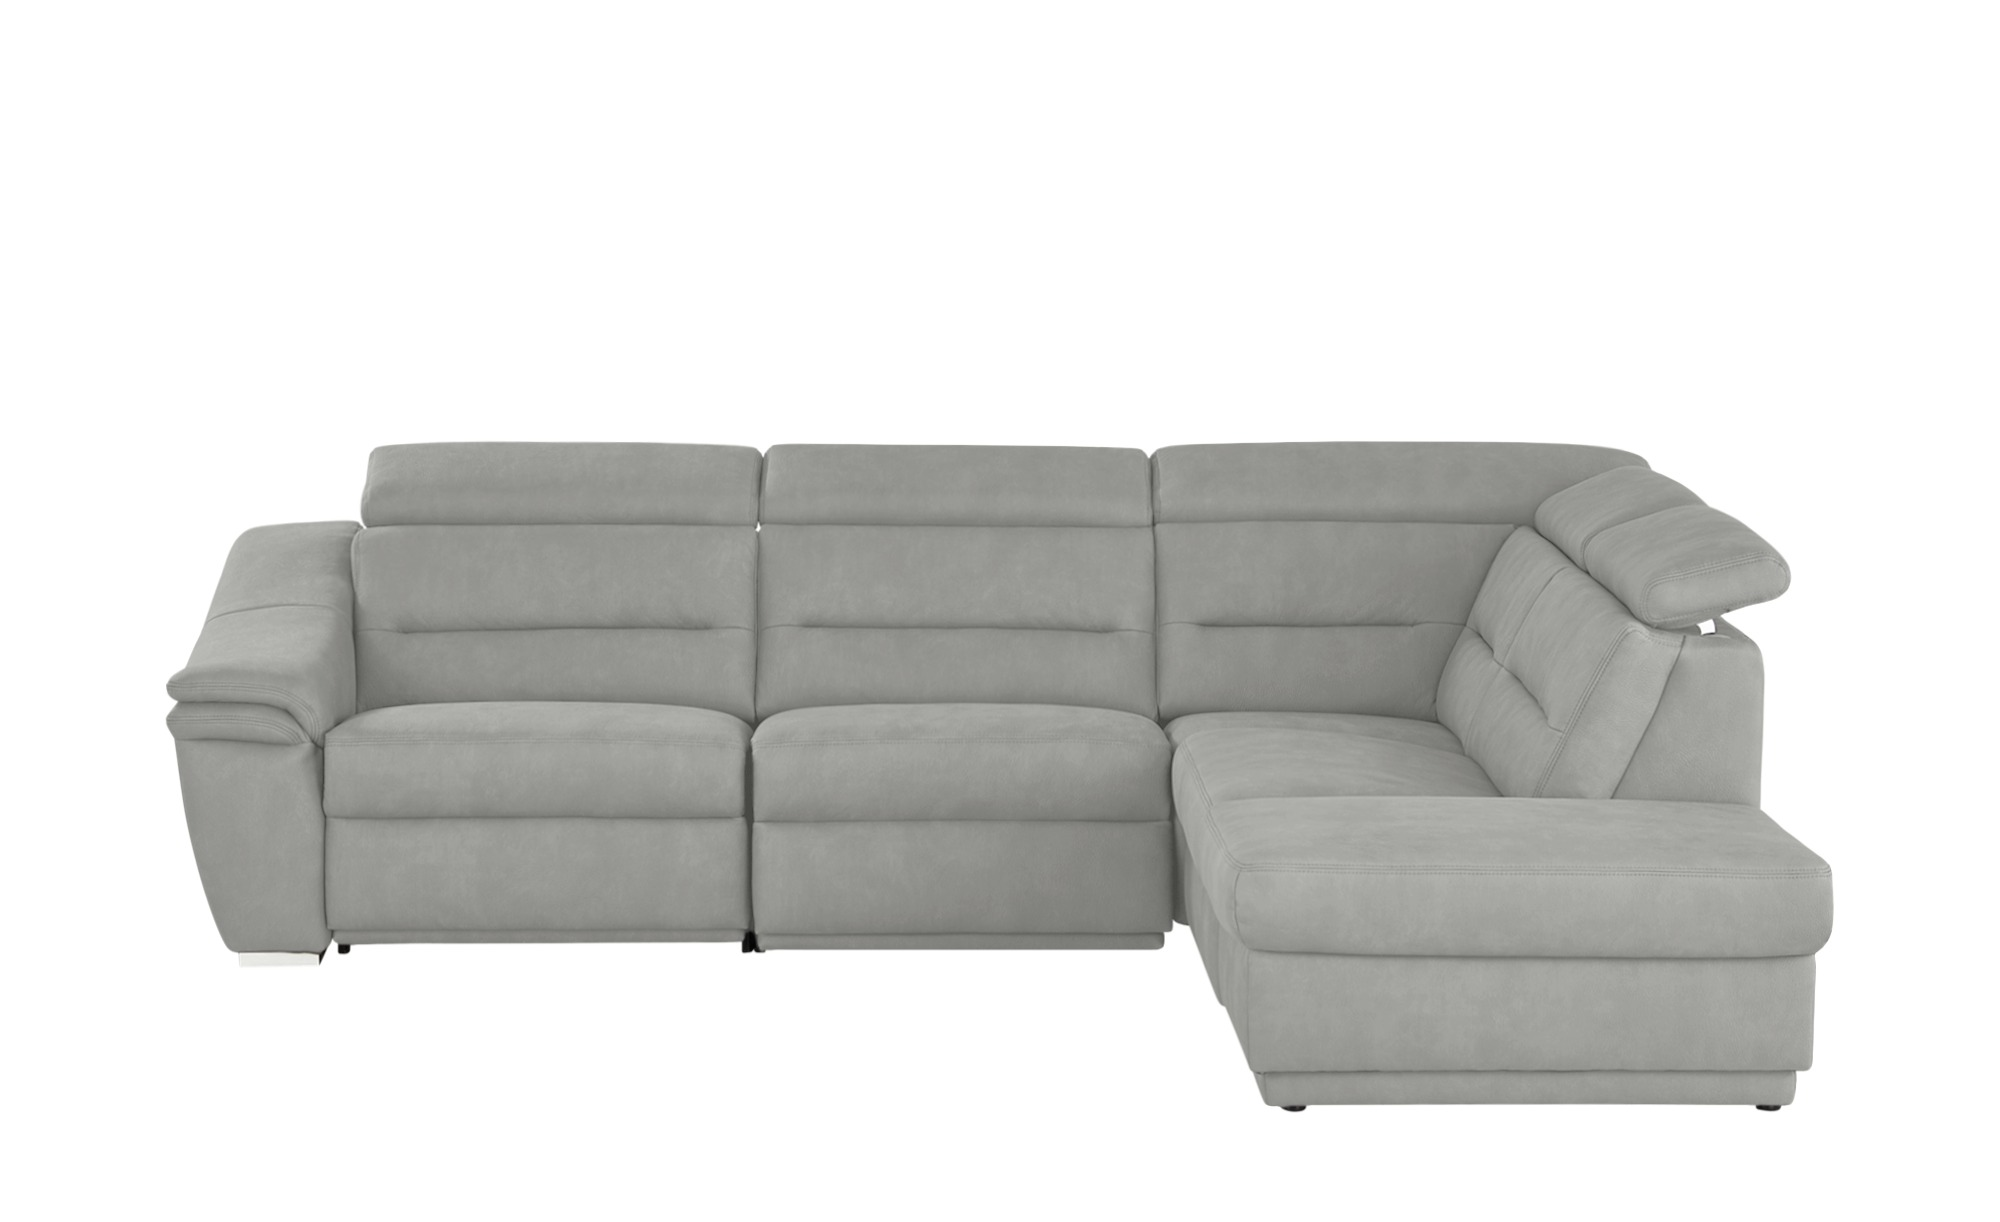 meinsofa ecksofa isabell breite h he 84 cm grau online kaufen bei woonio. Black Bedroom Furniture Sets. Home Design Ideas